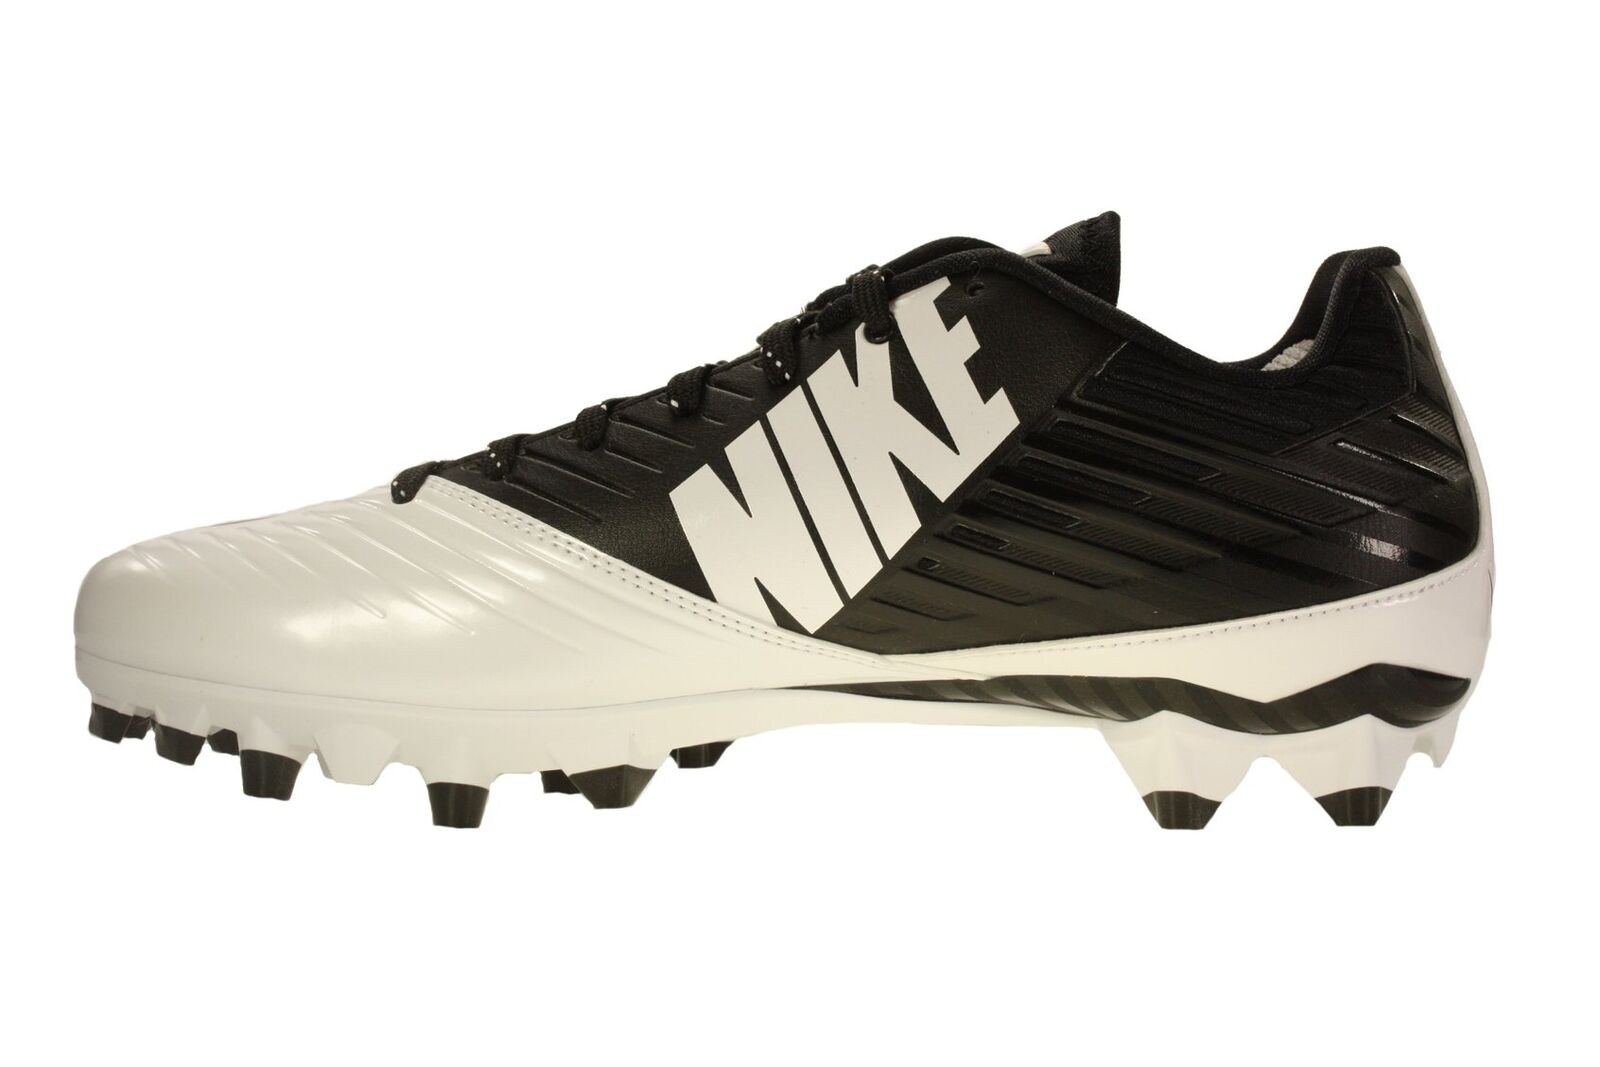 Men's Nike Vapor Speed Low TD Football Cleat Black White Black